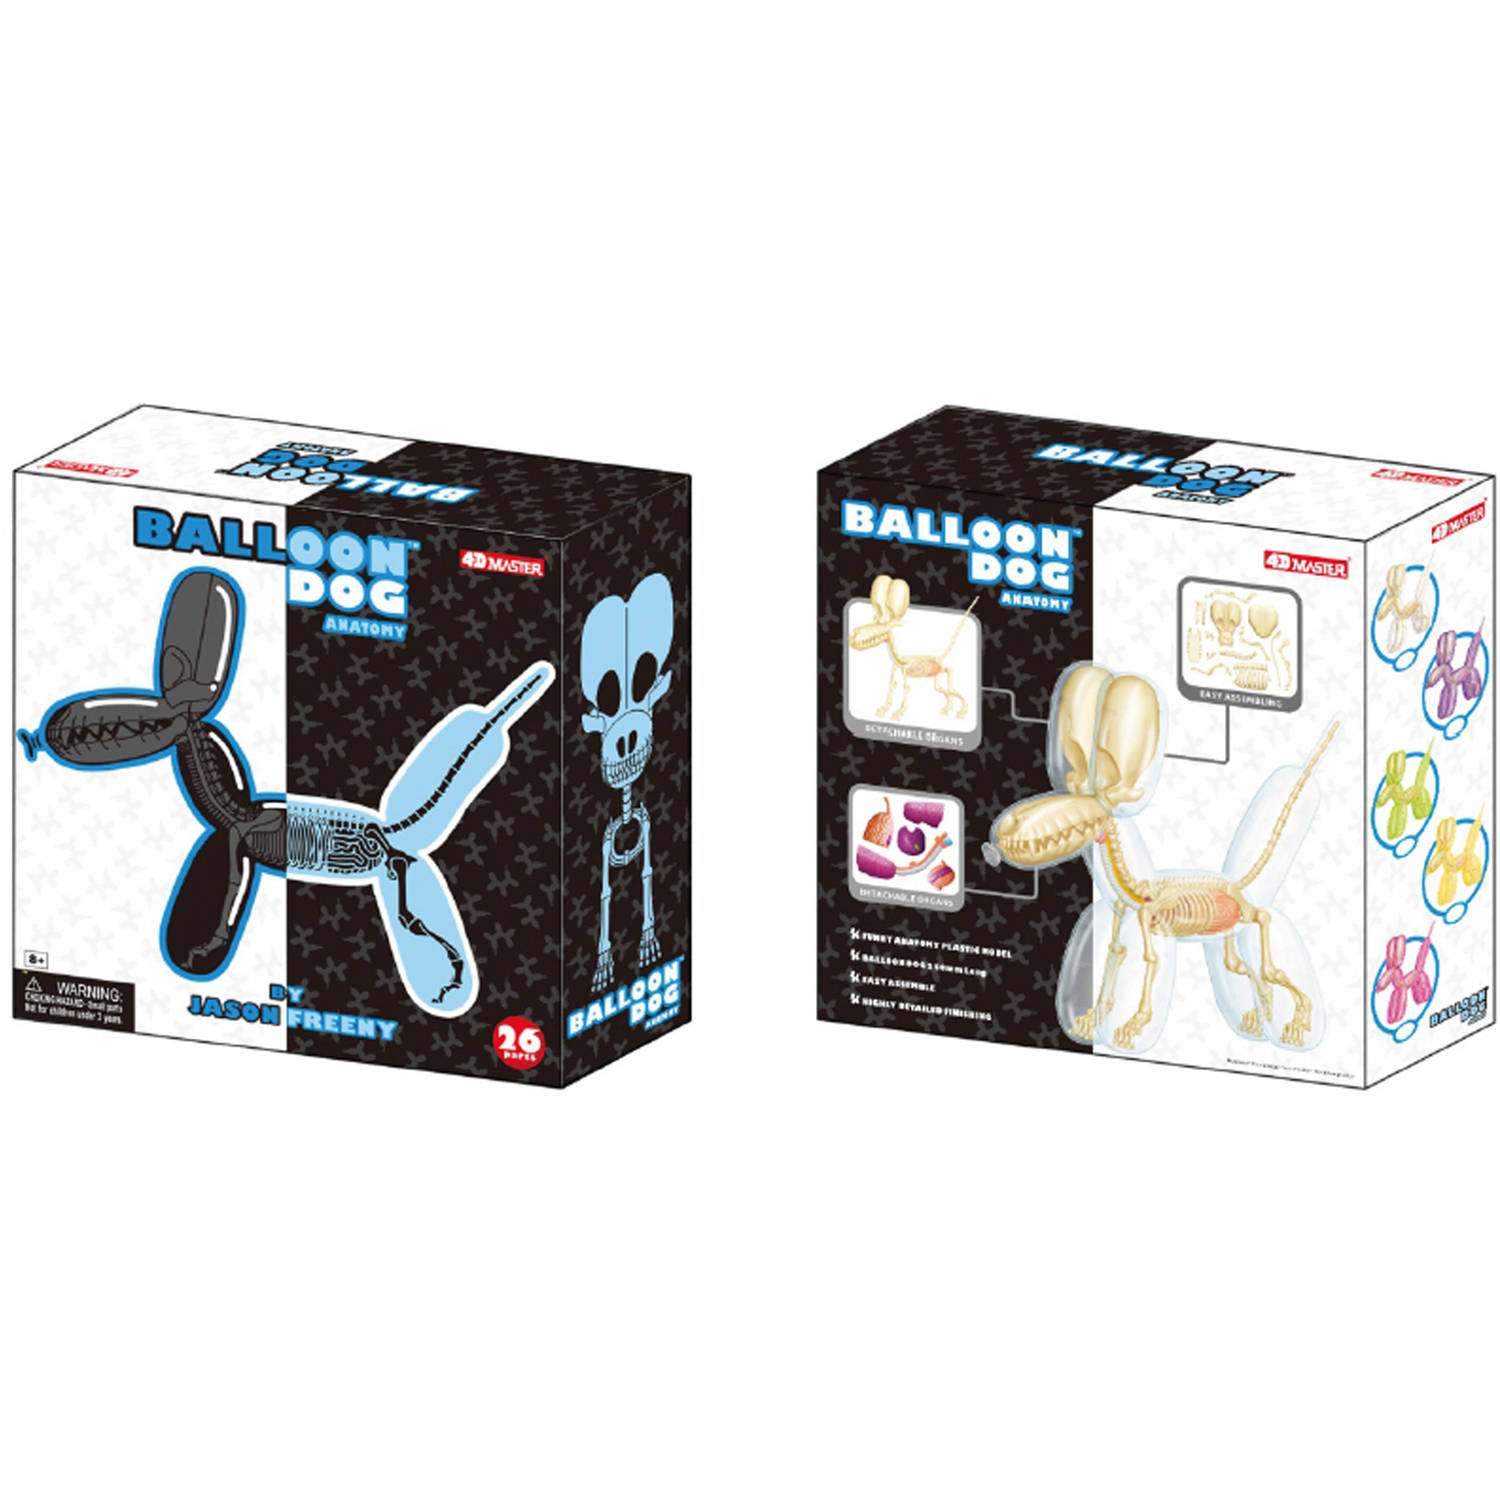 4D Vision Balloon Dog Anatomy Model